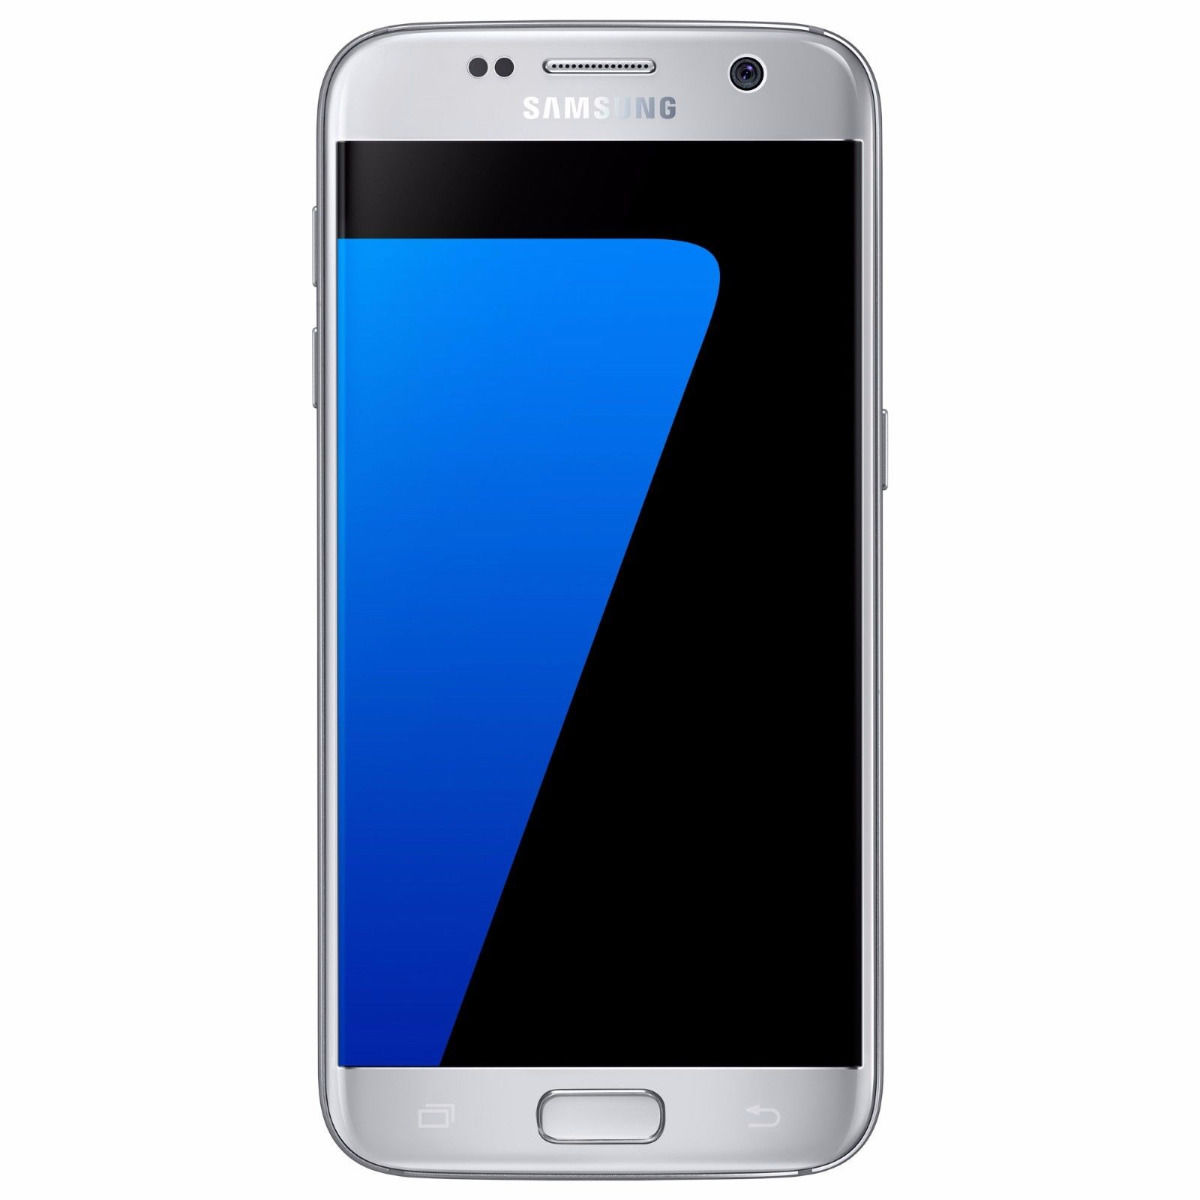 samsung galaxy s7 32gb sm g930t unlocked gsm t mobile 4g lte android smartphone martlocal. Black Bedroom Furniture Sets. Home Design Ideas